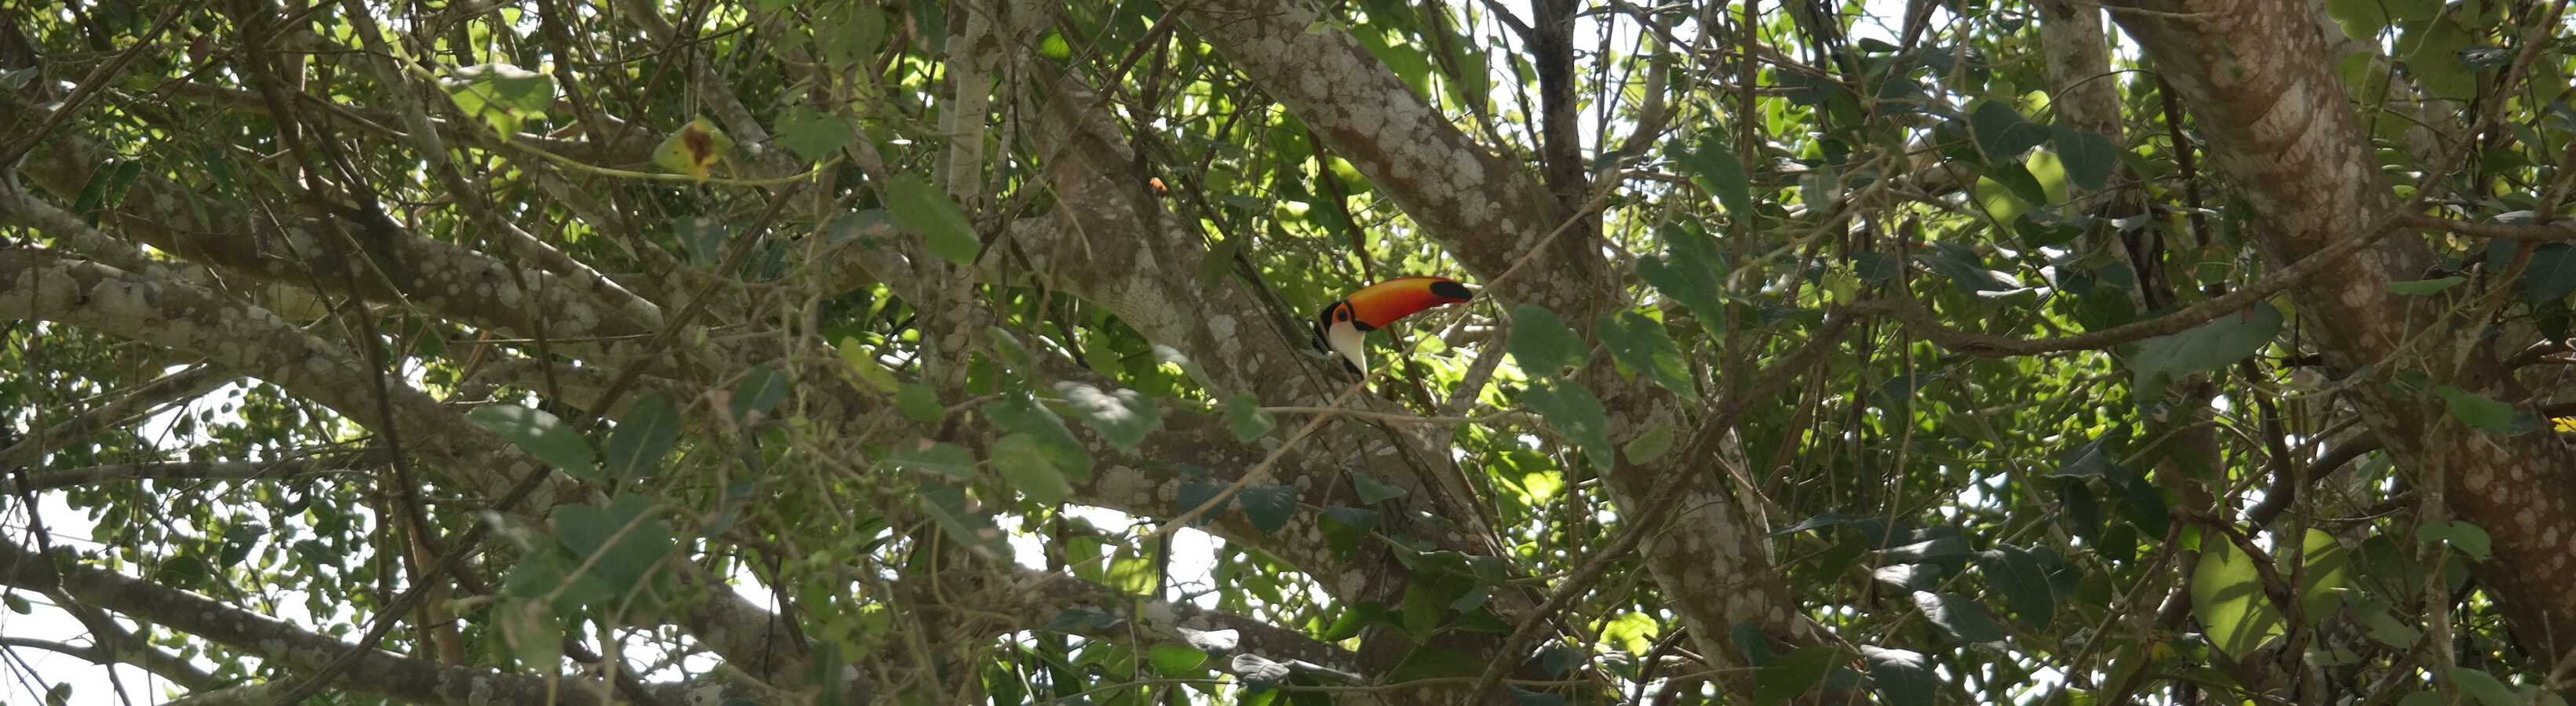 tucan hiding behind a branch